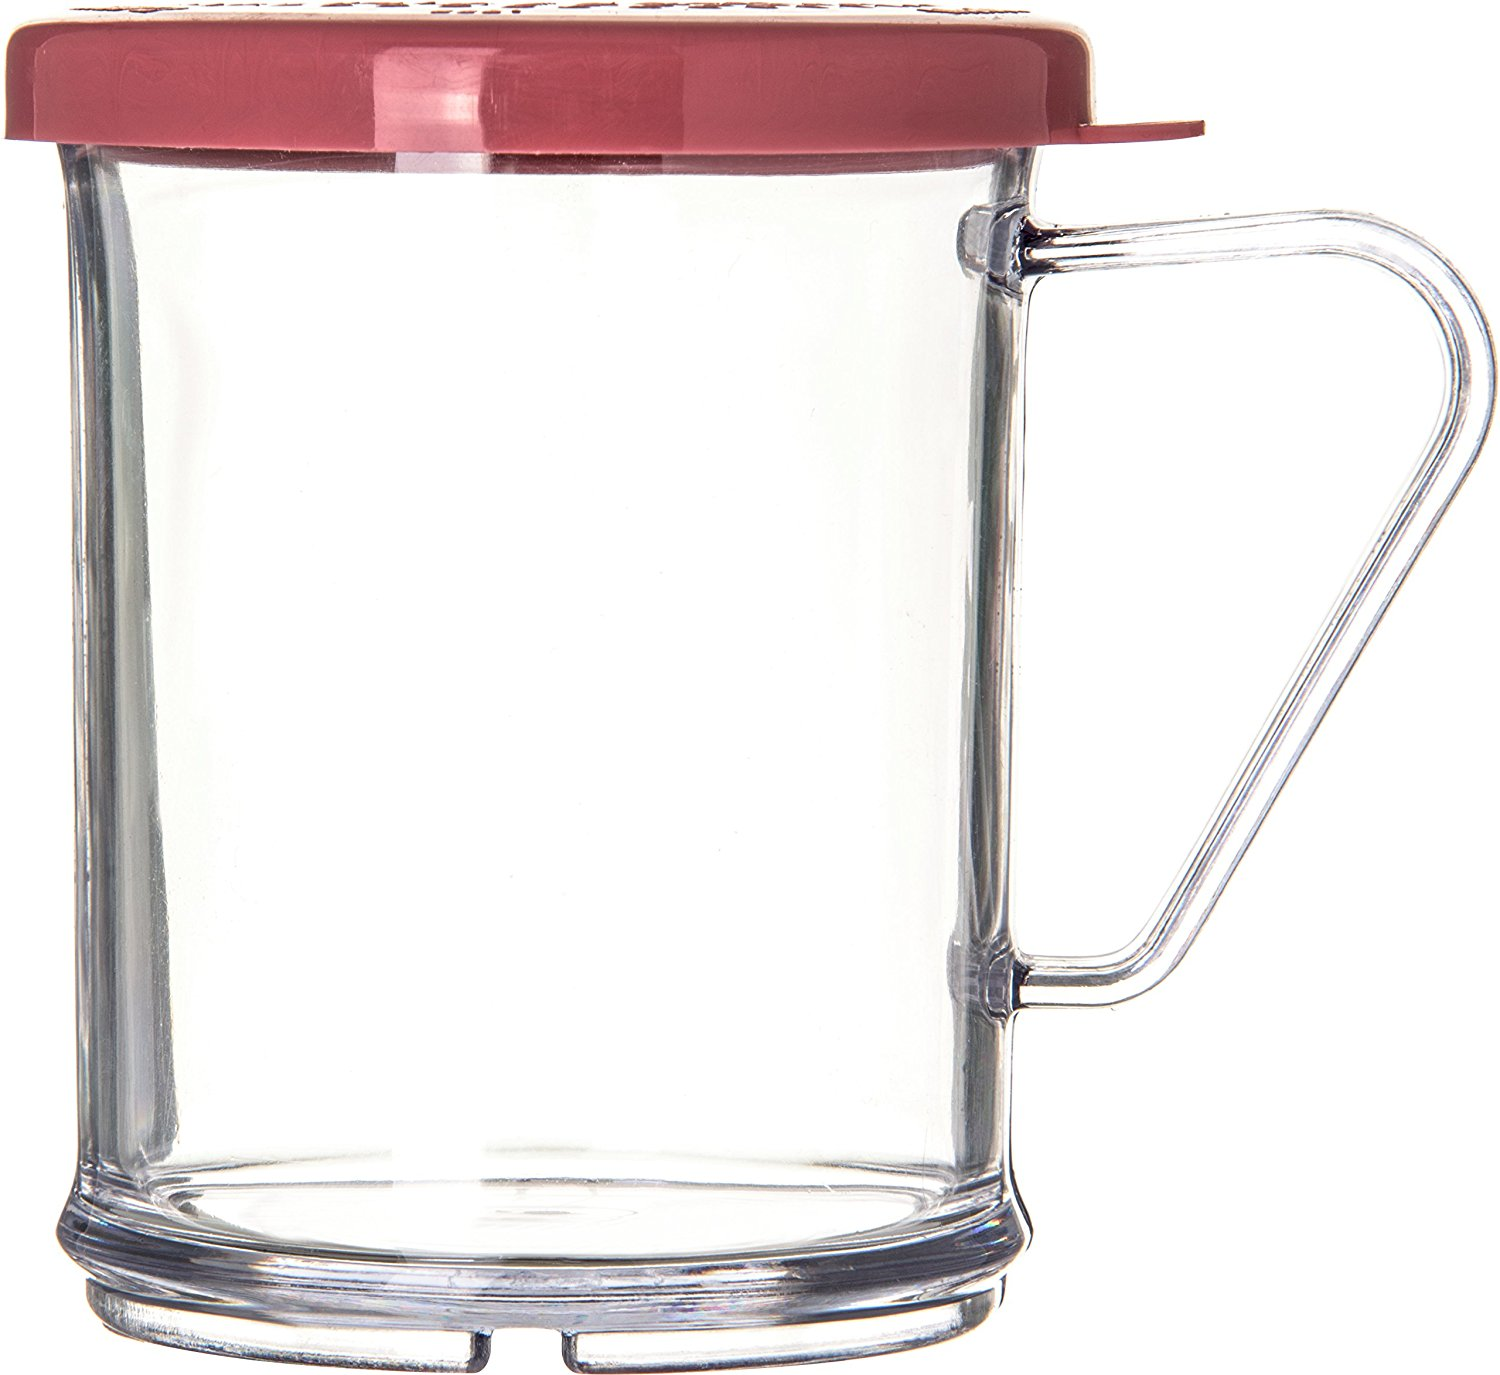 Carlisle 425055 Polycarbonate Shaker/Dredge with Medium Ground Rose Lid, 9-oz. Capacity, Clear (Case of 12)